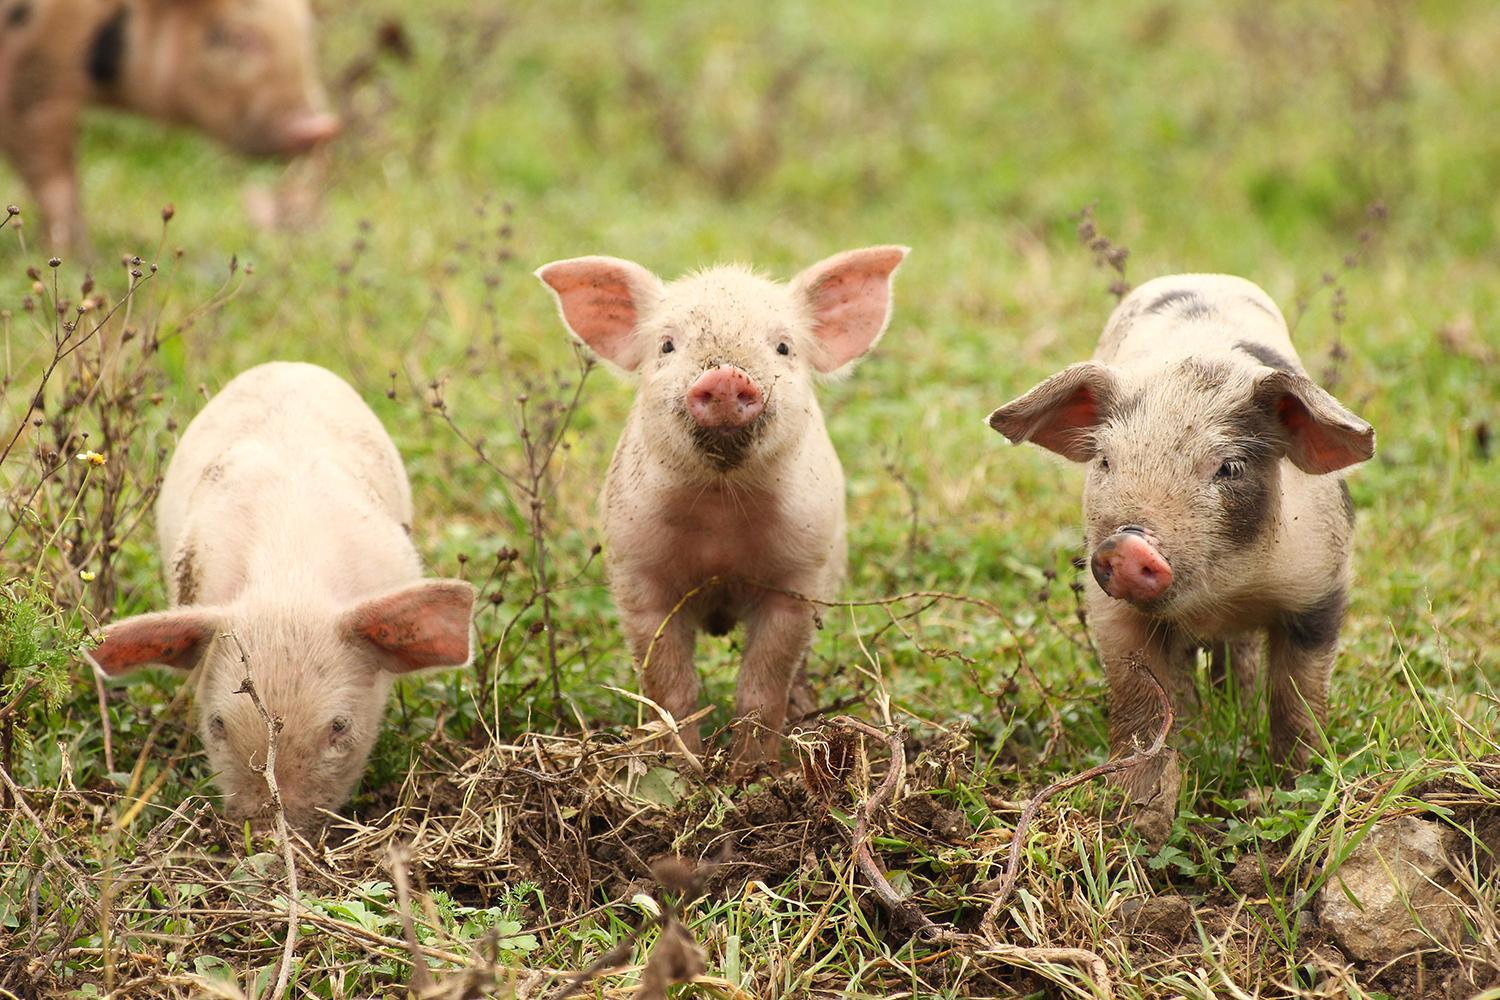 Three piglets in a field